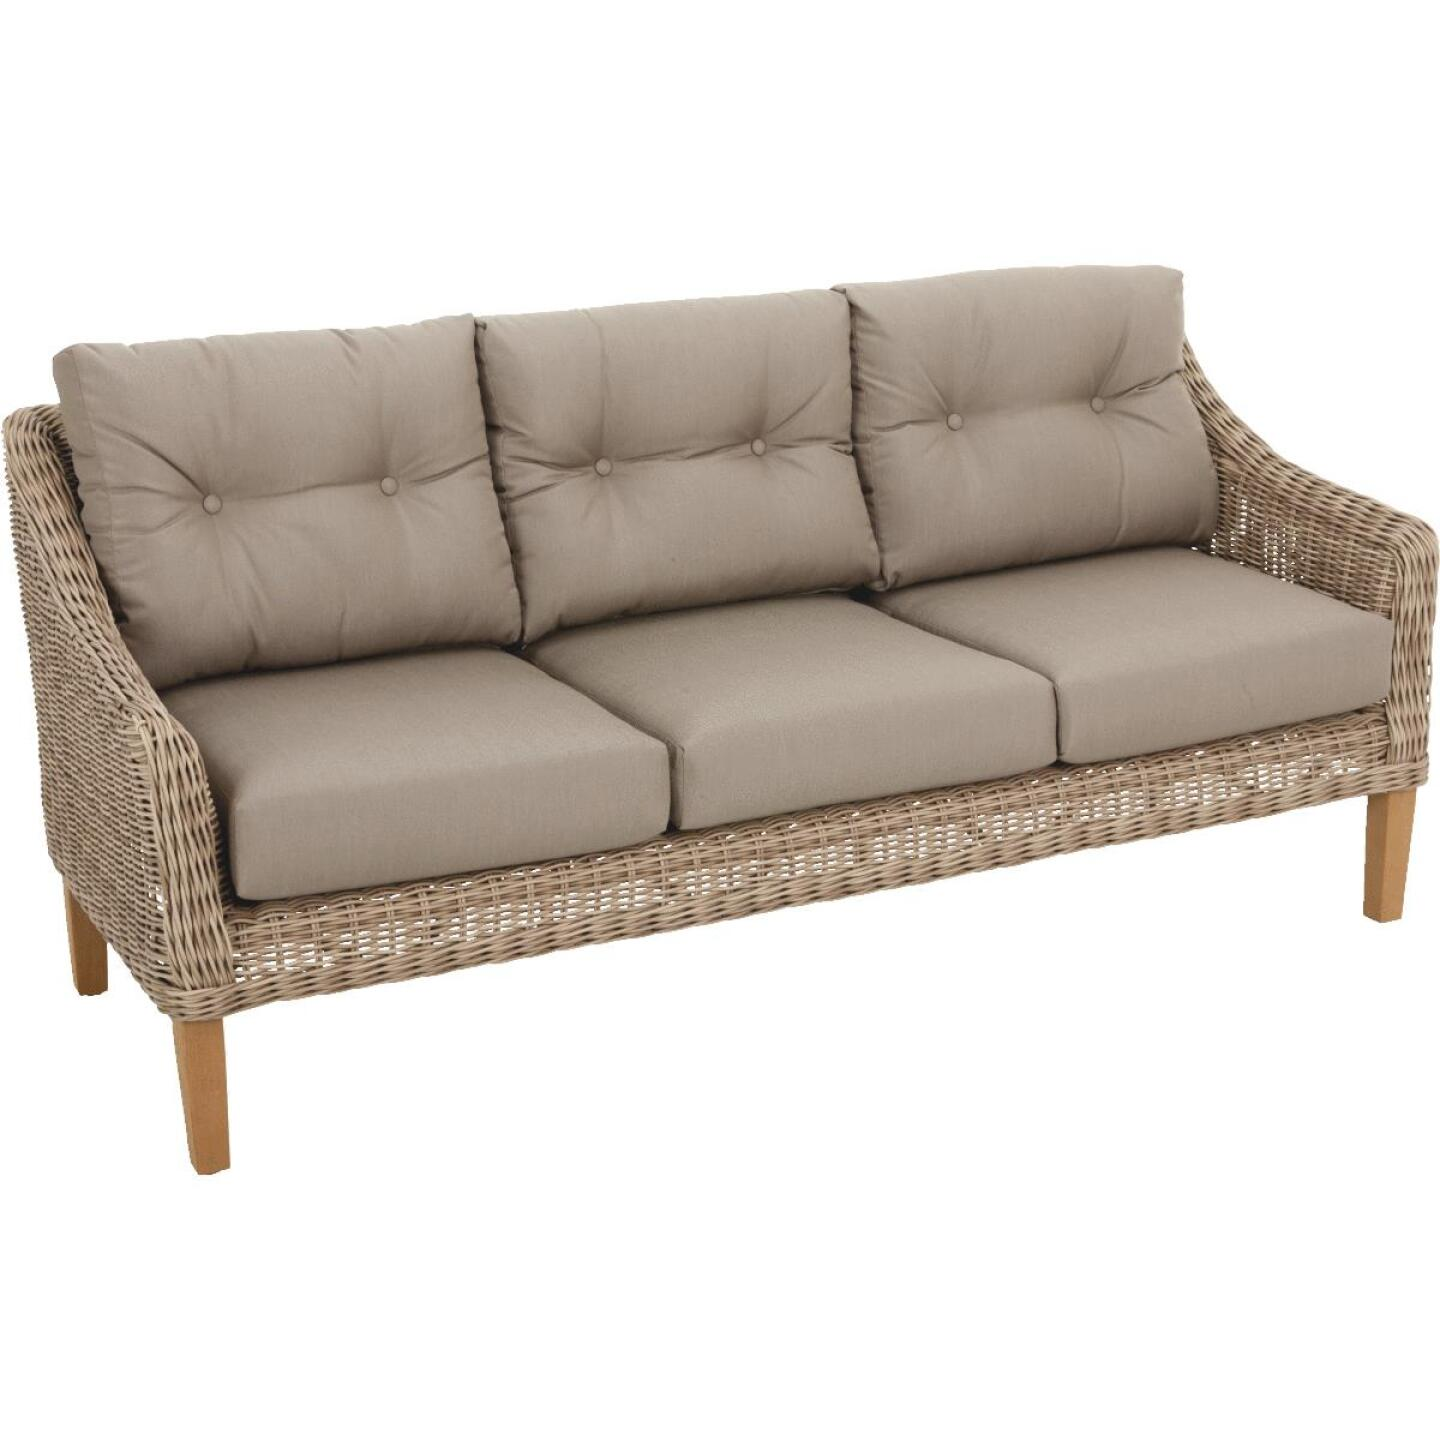 Cambria 3-Person 73 In. W. x 31 In. H. x 29 In. D. Taupe Wicker Sofa Image 1